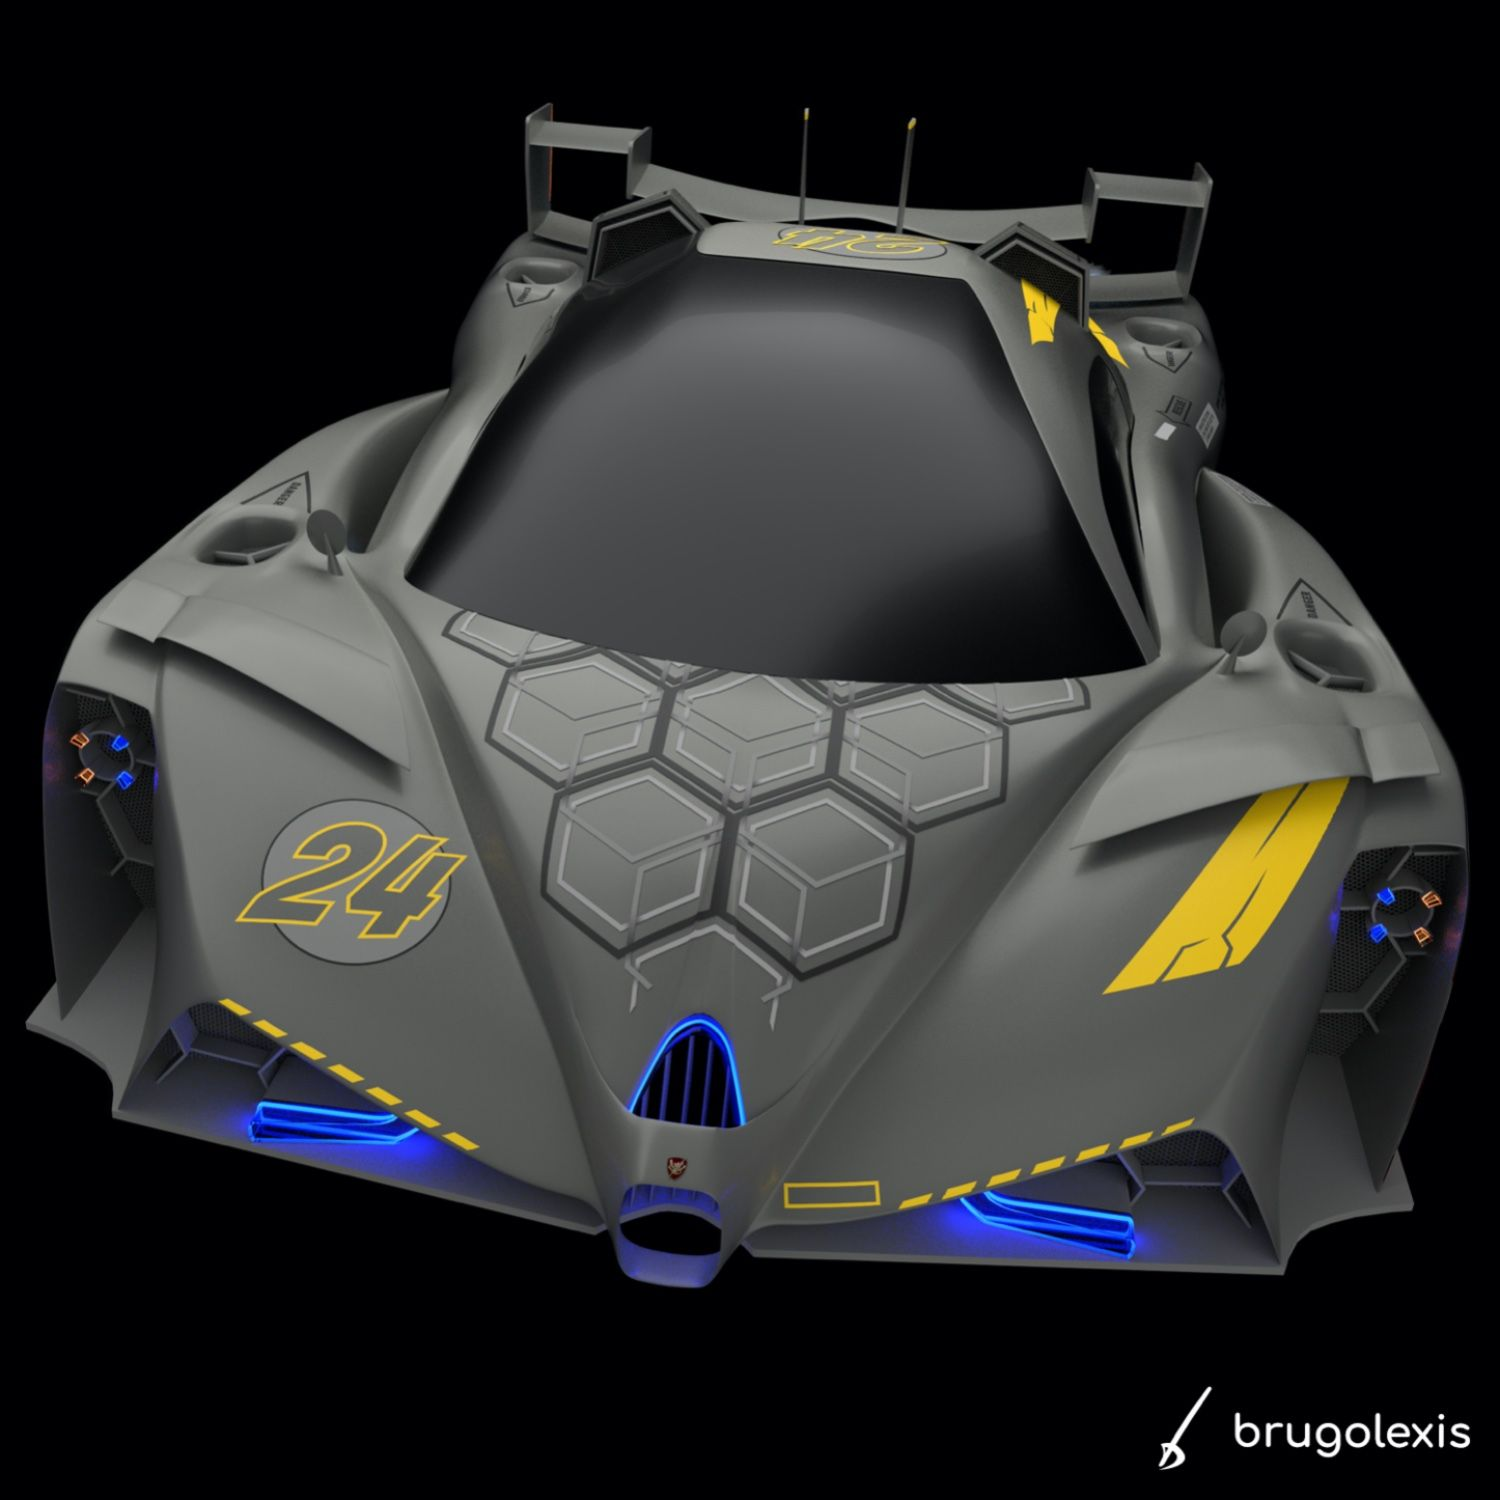 New designs to come BONUS 3/3 Having some fun to mix military aircraft style and flying racing concept car using #affinitydesigner to create the decorative textures and #blendercycles for the final 3D render . . . #conceptcar #supercar #hypercar #racingcar #flyingcar #flyingcars #cardesigncommunity #militaryaviation #aircrafts #plane #blender #blender3d #blendercommunity #3d #cgi #madeinaffinity #carlifestyle #futuristiccars #sportscar #drawtodrive #airroad #vehicledesign #creative #carpassion